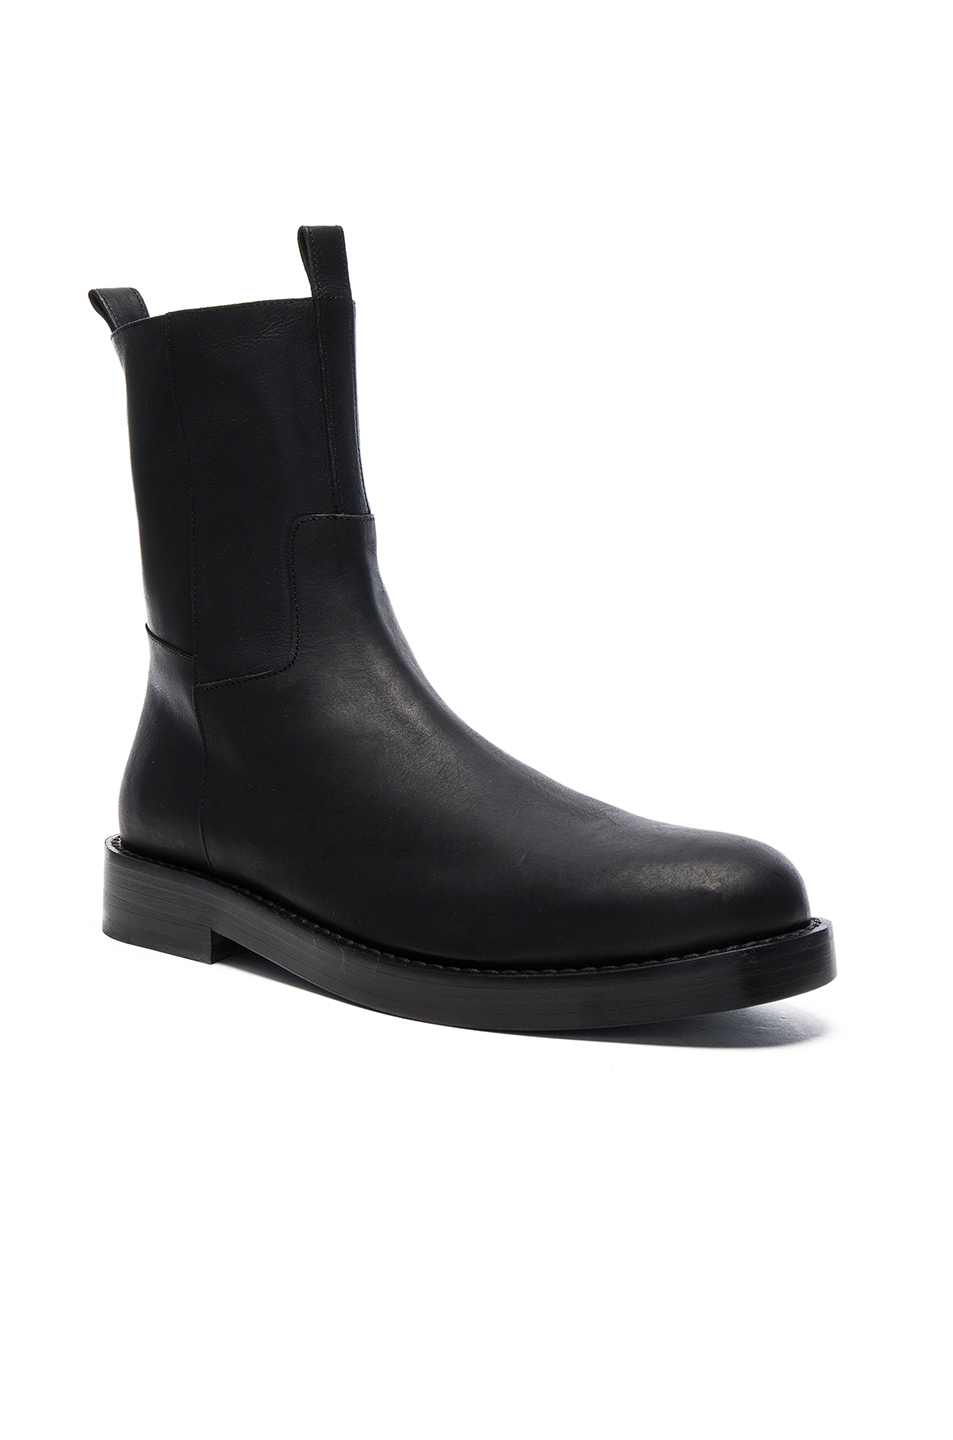 Photo of Ann Demeulemeester Leather Boots in Black - shop Ann Demeulemeester menswear